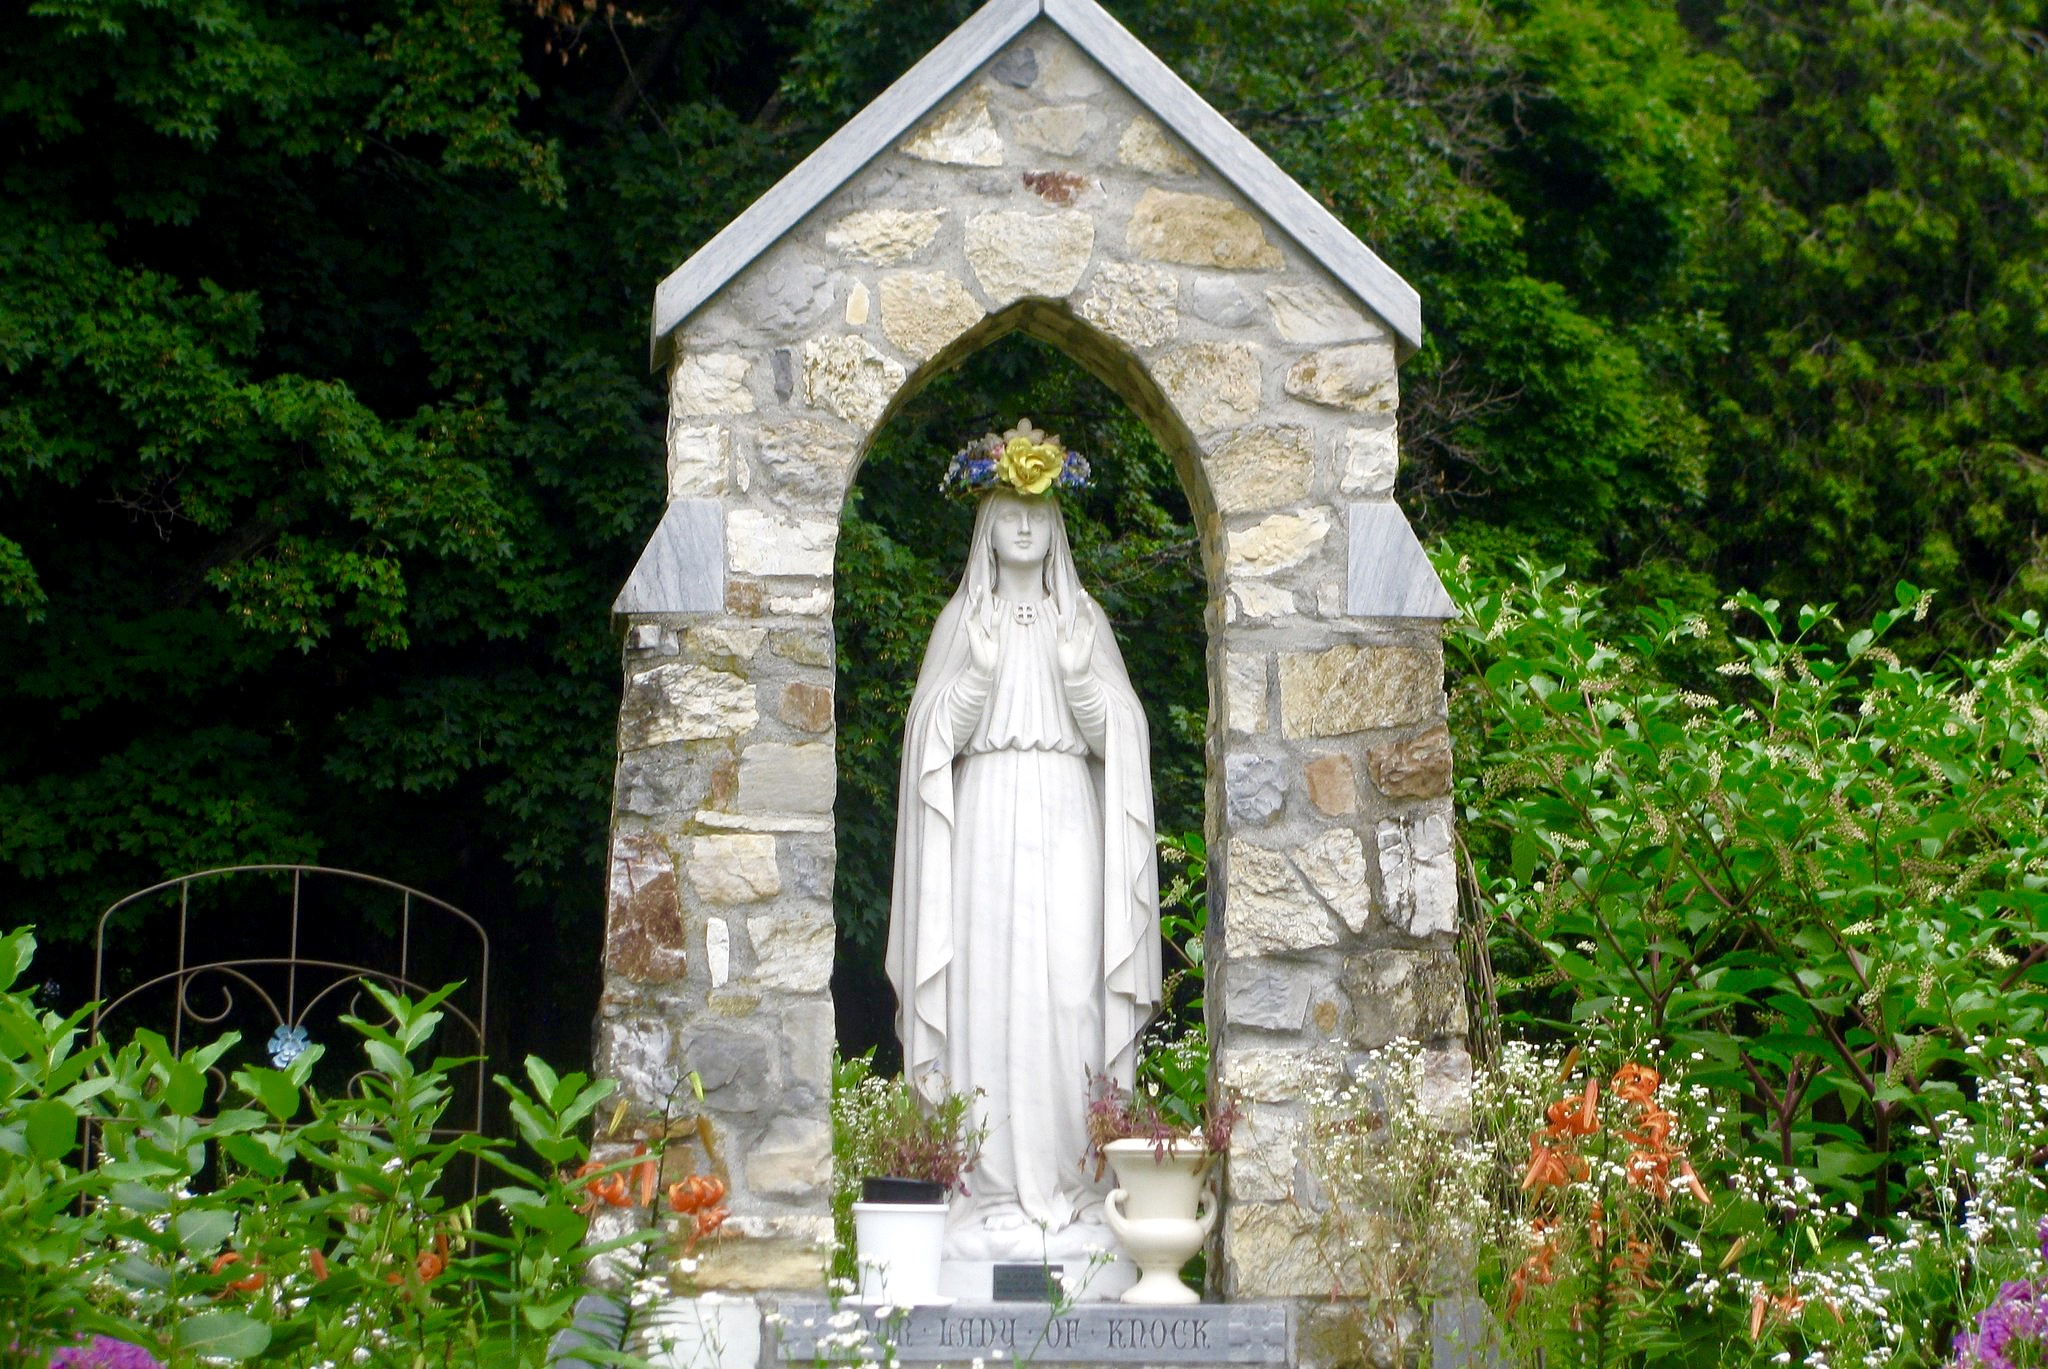 Our Lady of Knock by Mark Hootman